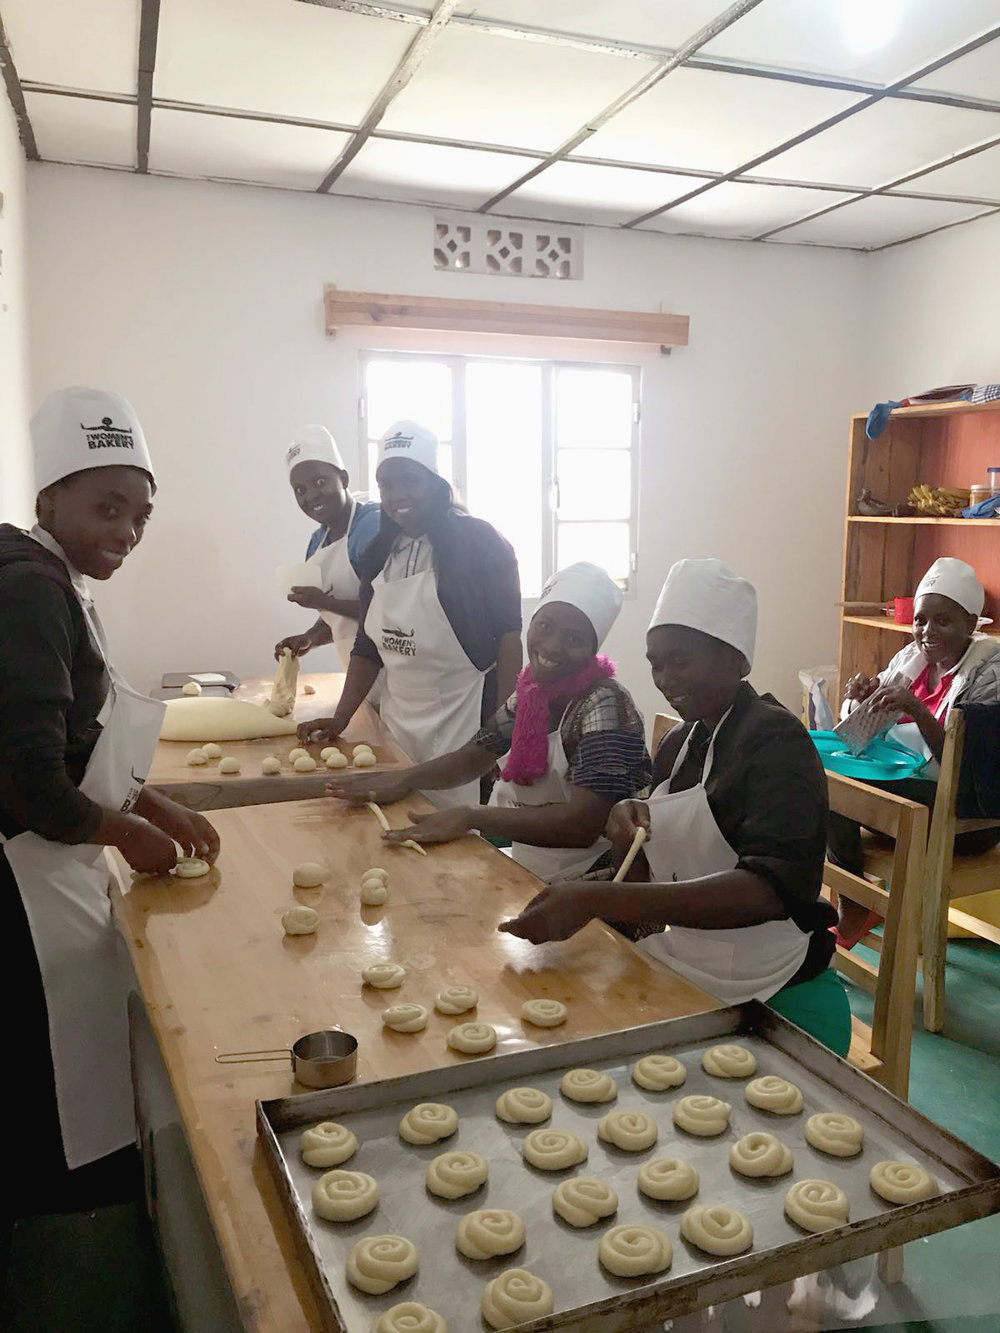 august 2018 - Not a minute went to waste—while baking, the the women studied and practiced alongside current bakers.